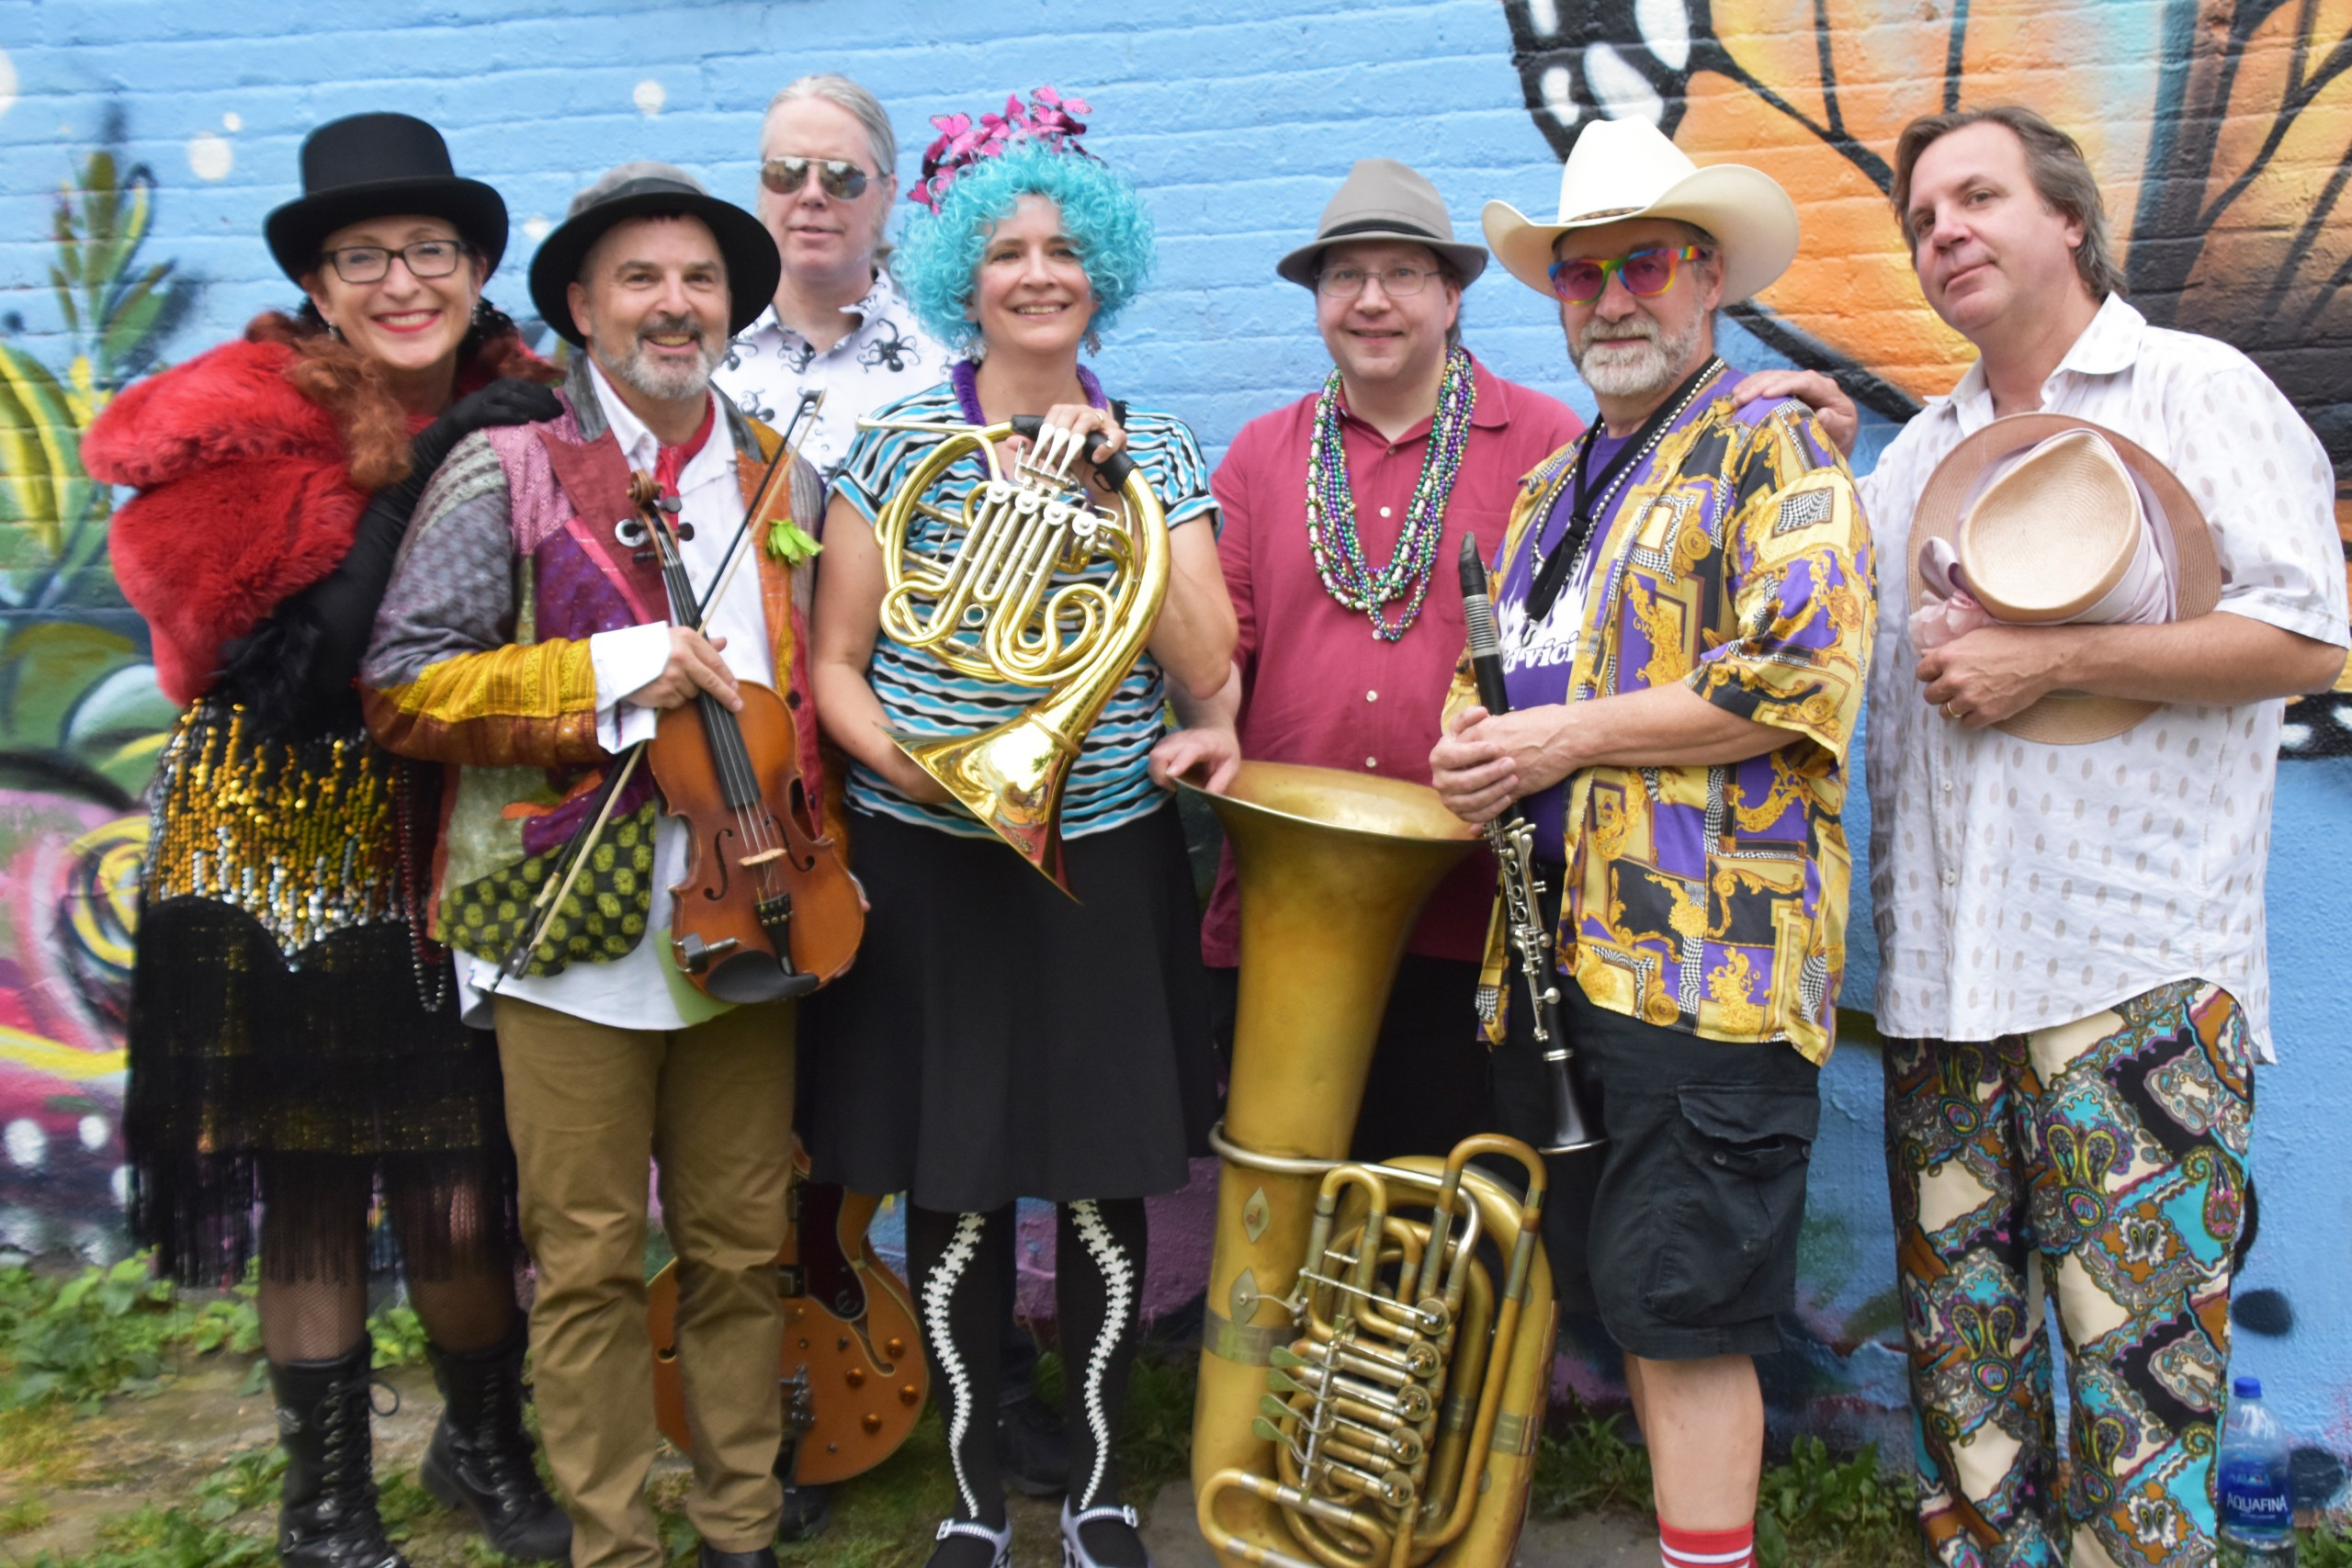 Several members of the klezmer band Yid Vicious, in costume with instruments